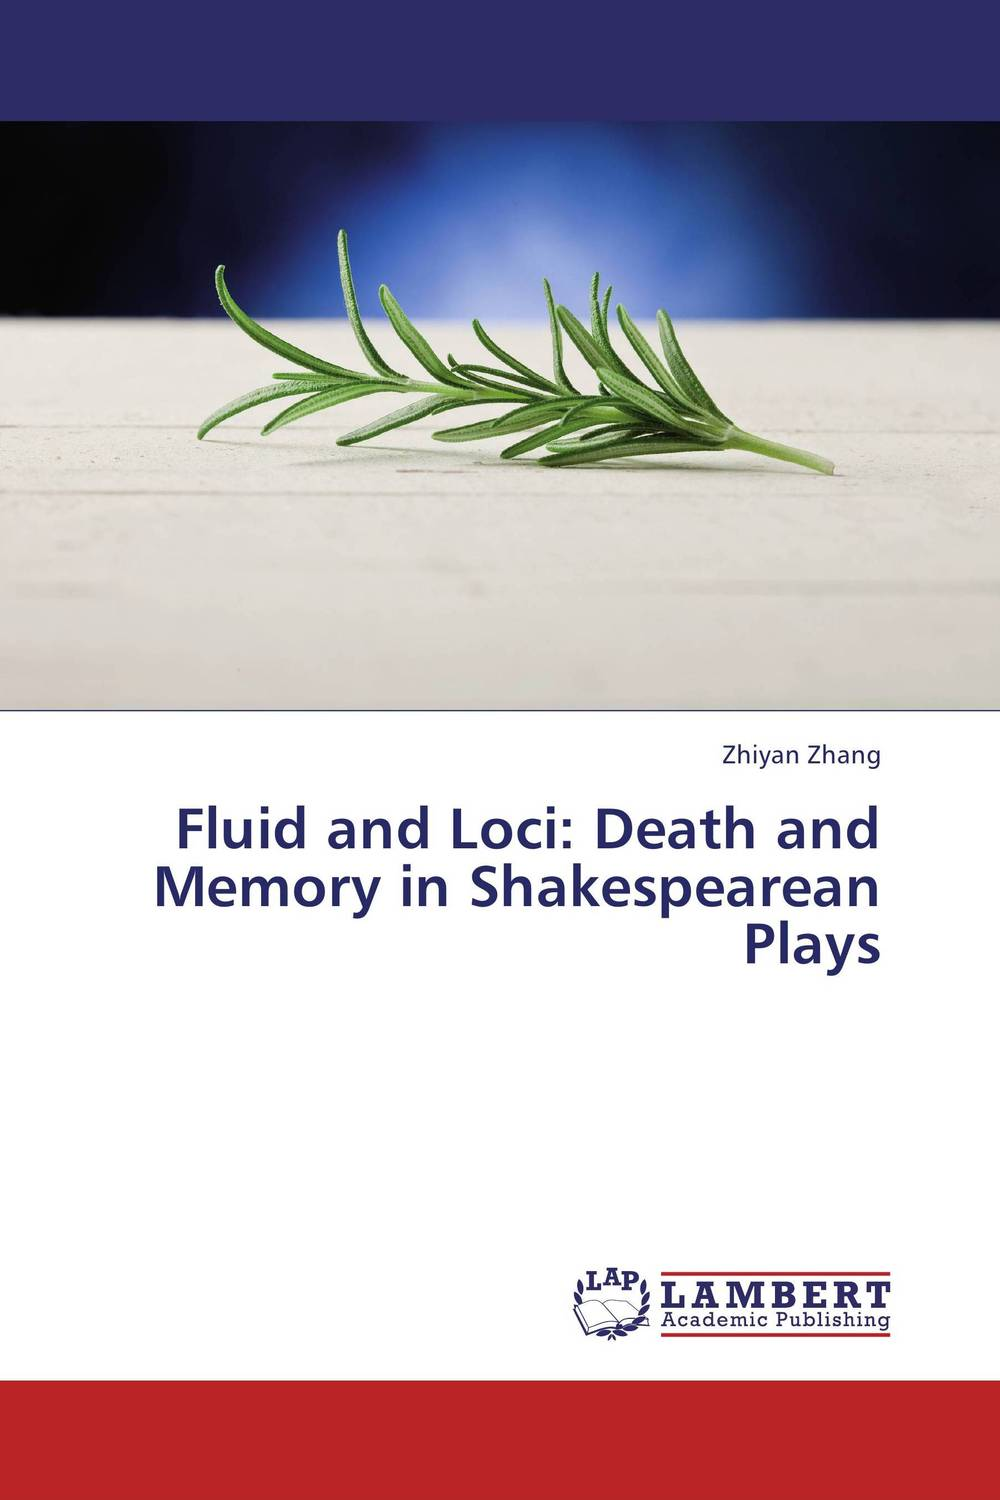 Fluid and Loci: Death and Memory in Shakespearean Plays genius loci